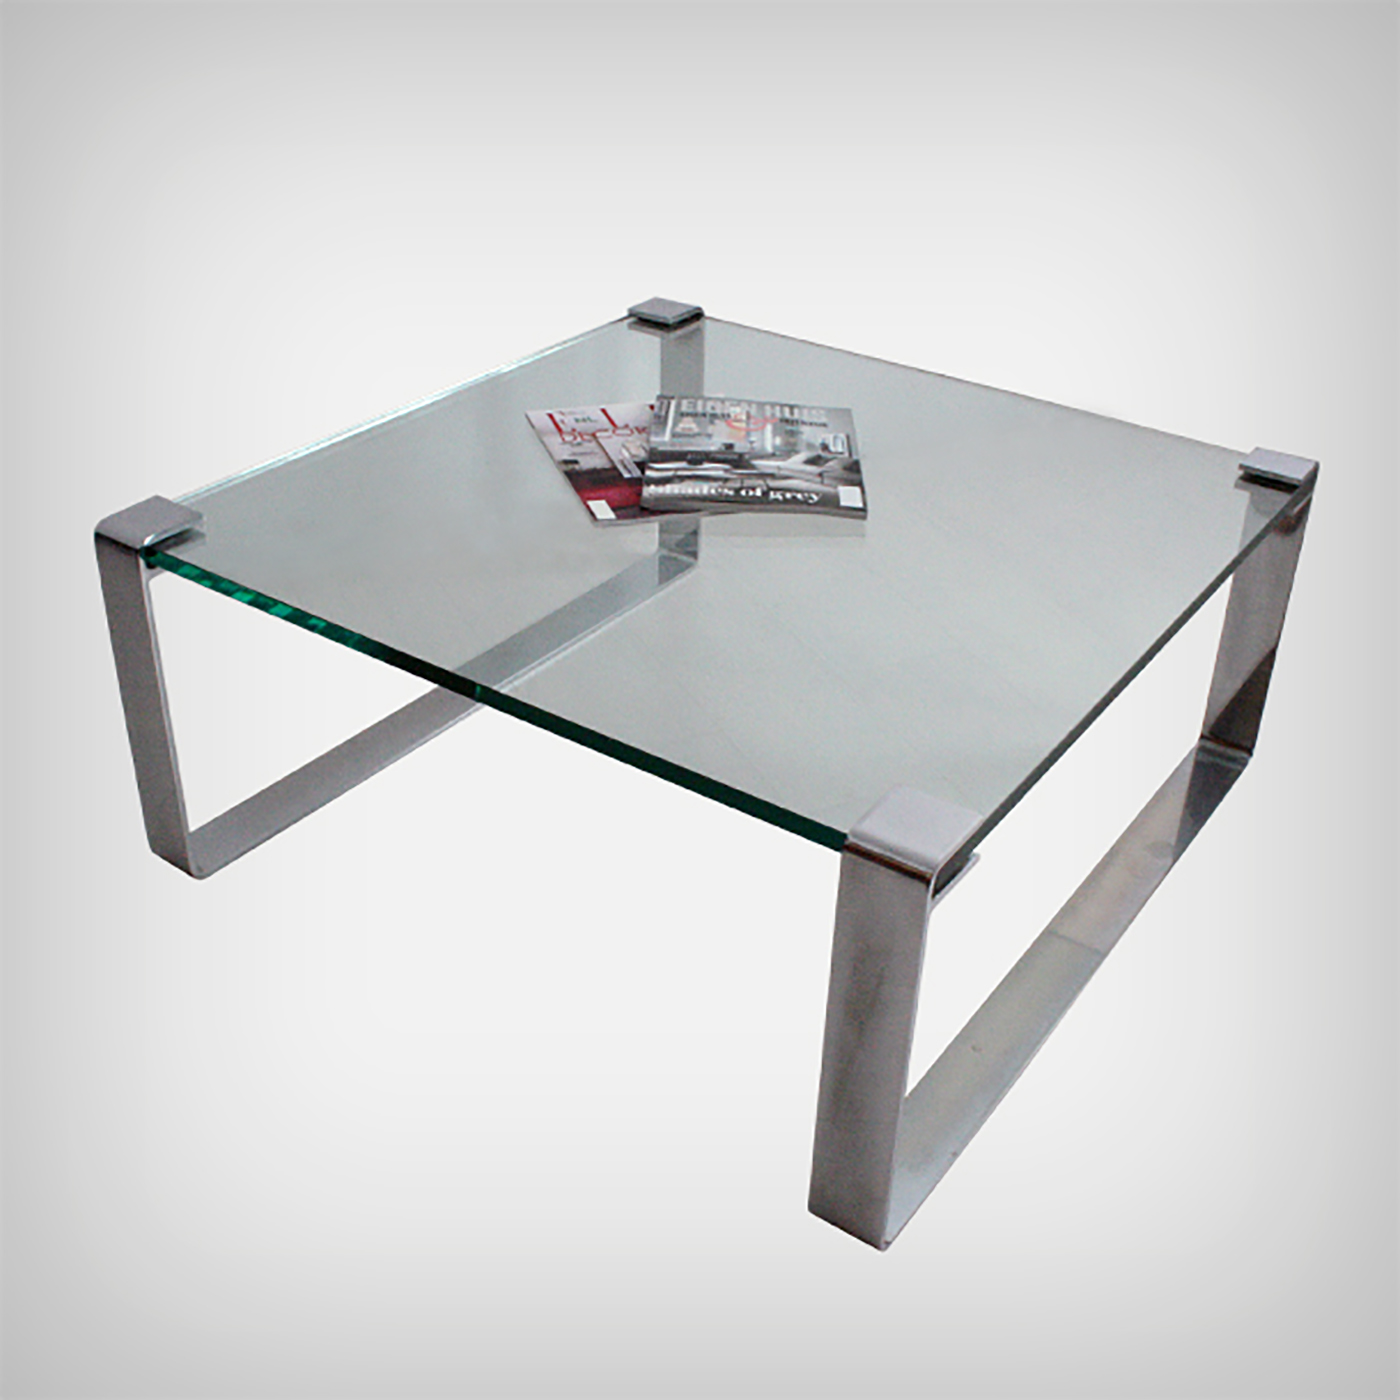 Frameless Glass Coffee Table: Chrome And Glass Coffee Table